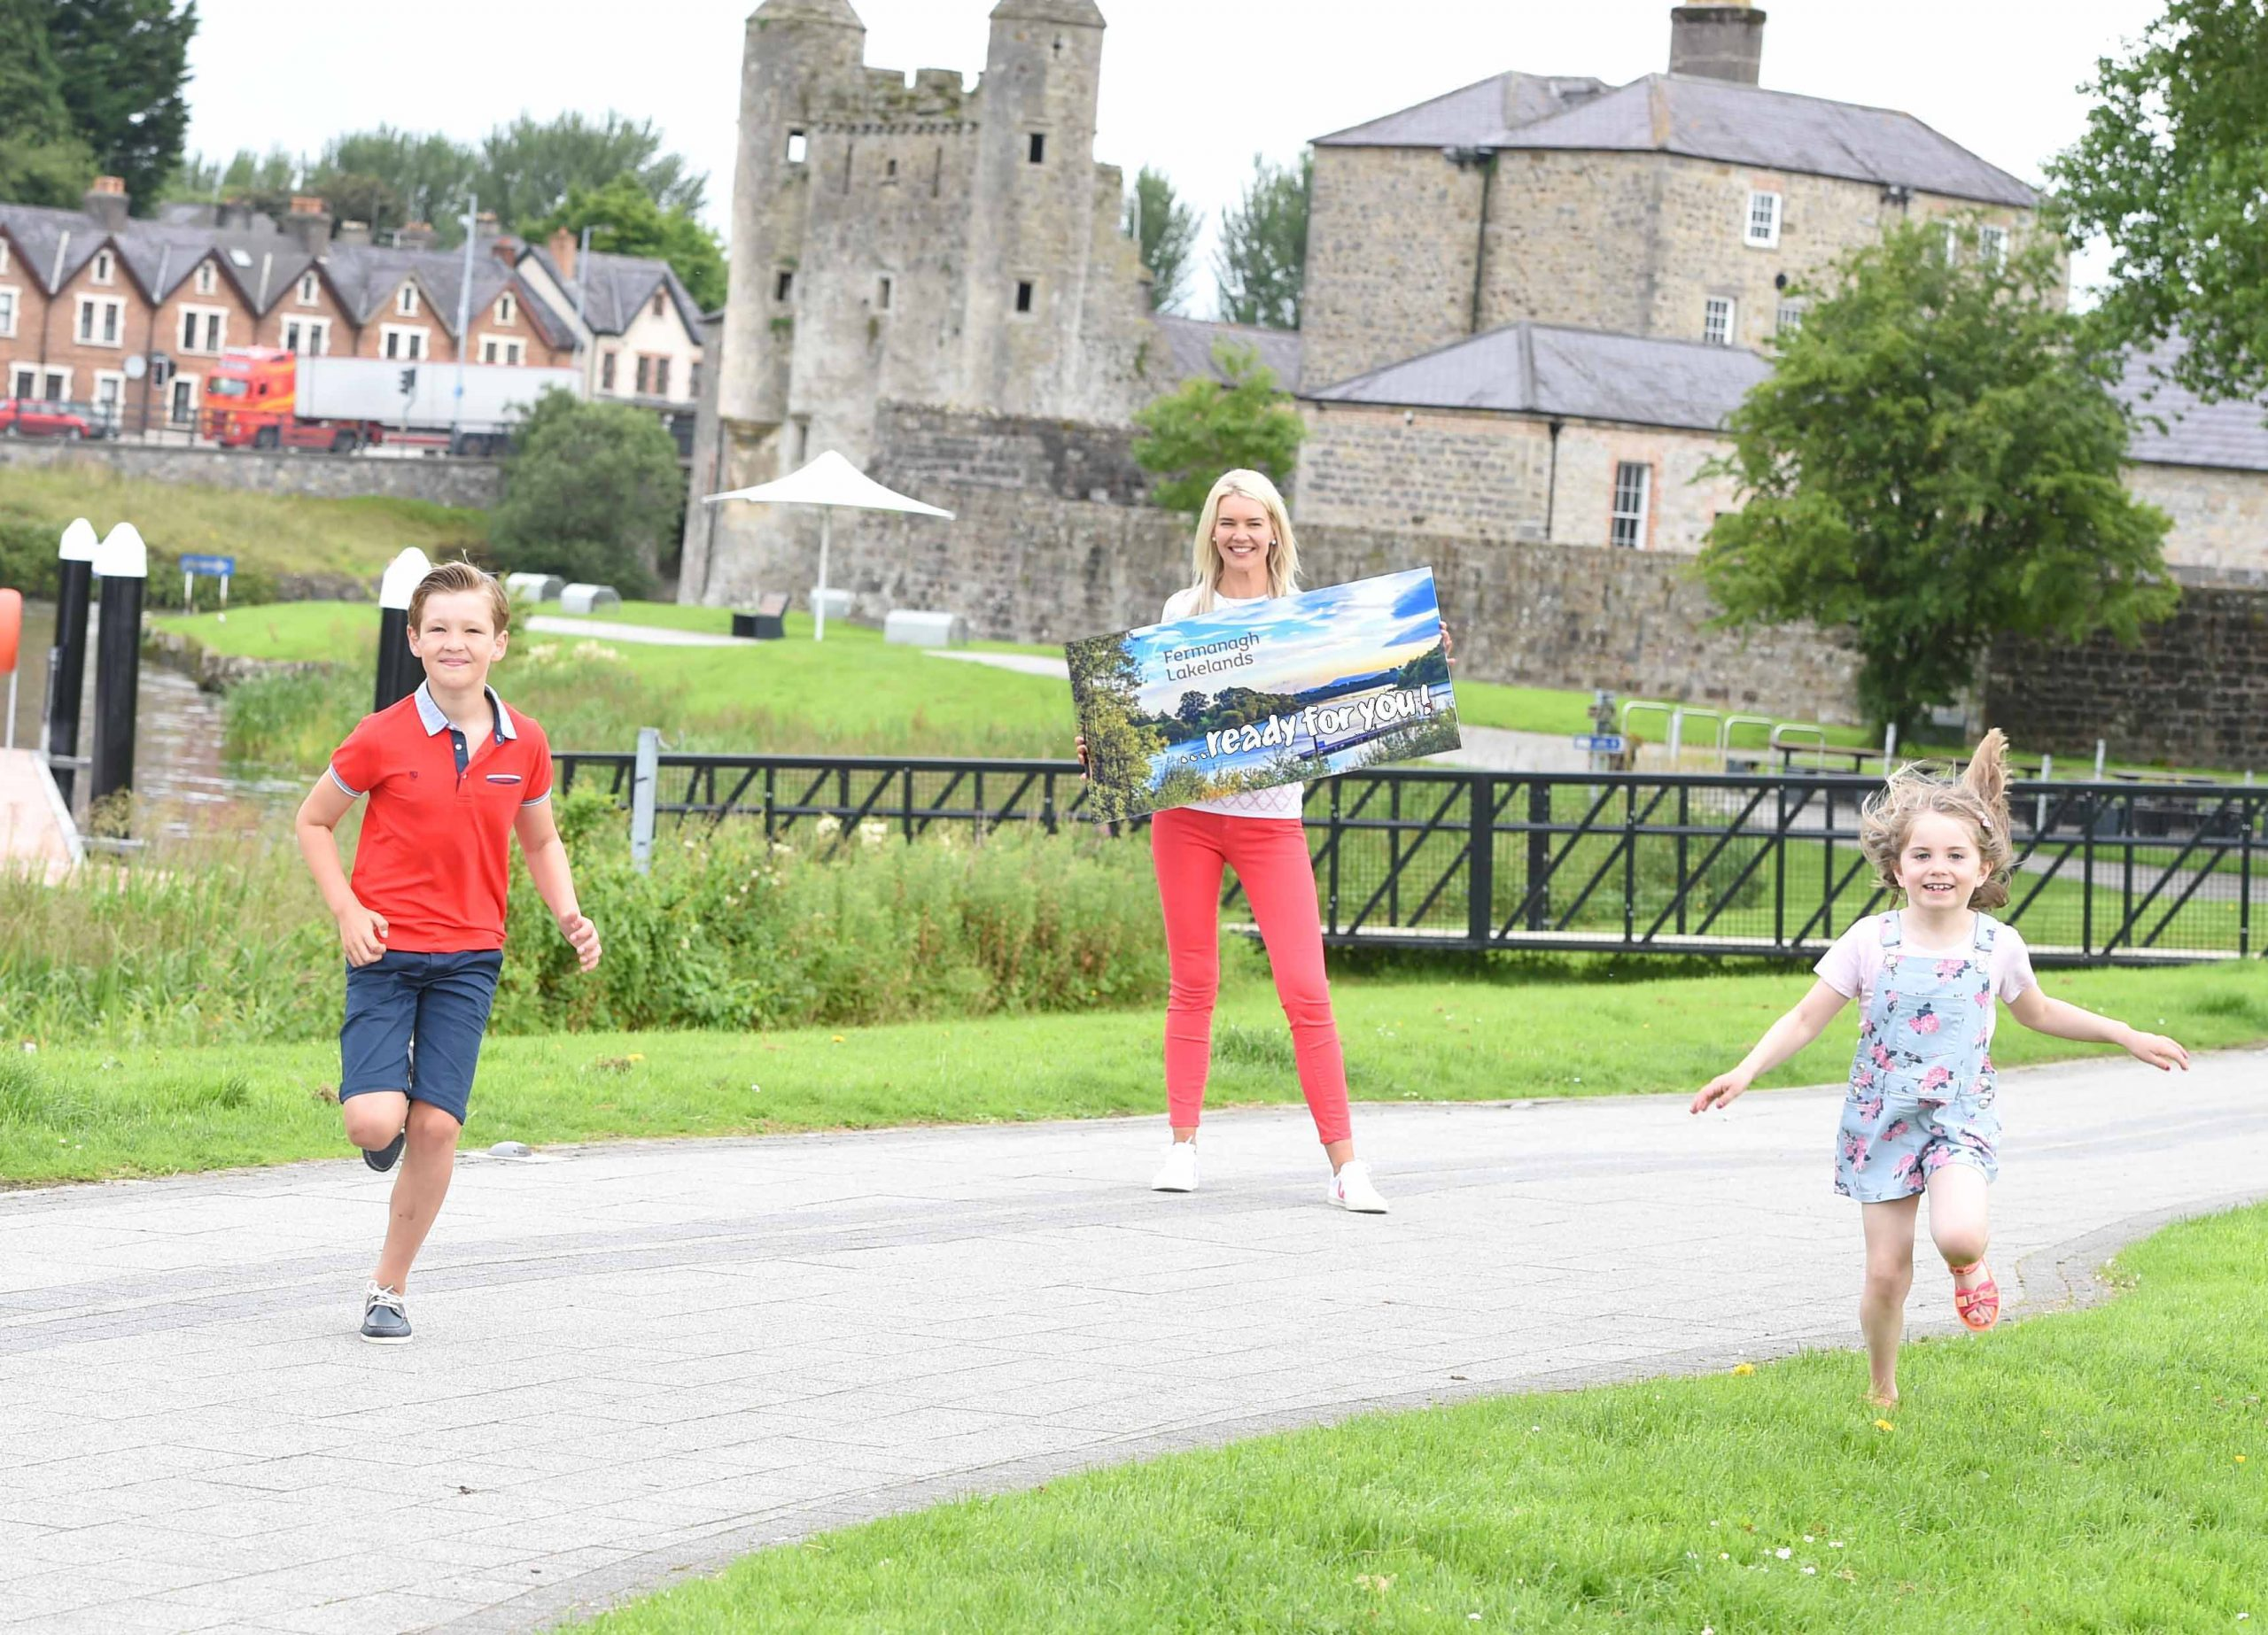 As Covid-19 restrictions ease, more and more people are looking forward to a much-needed break and Fermanagh Lakeland Tourism has reported a significant increase in staycation enquiries in the county over the last four weeks. It's new marketing initiative Ready For You aims to encourage holiday makers to book a staycation and enjoy everything that the Lakeland County has to offer. Visit www.fermanaghlakelands.com to plan your staycation today! Pictured as they get ready for a fun filled break in Co. Fermanagh are (L-R) Wilson Grey, Judith Grey and Eabha Smyth.